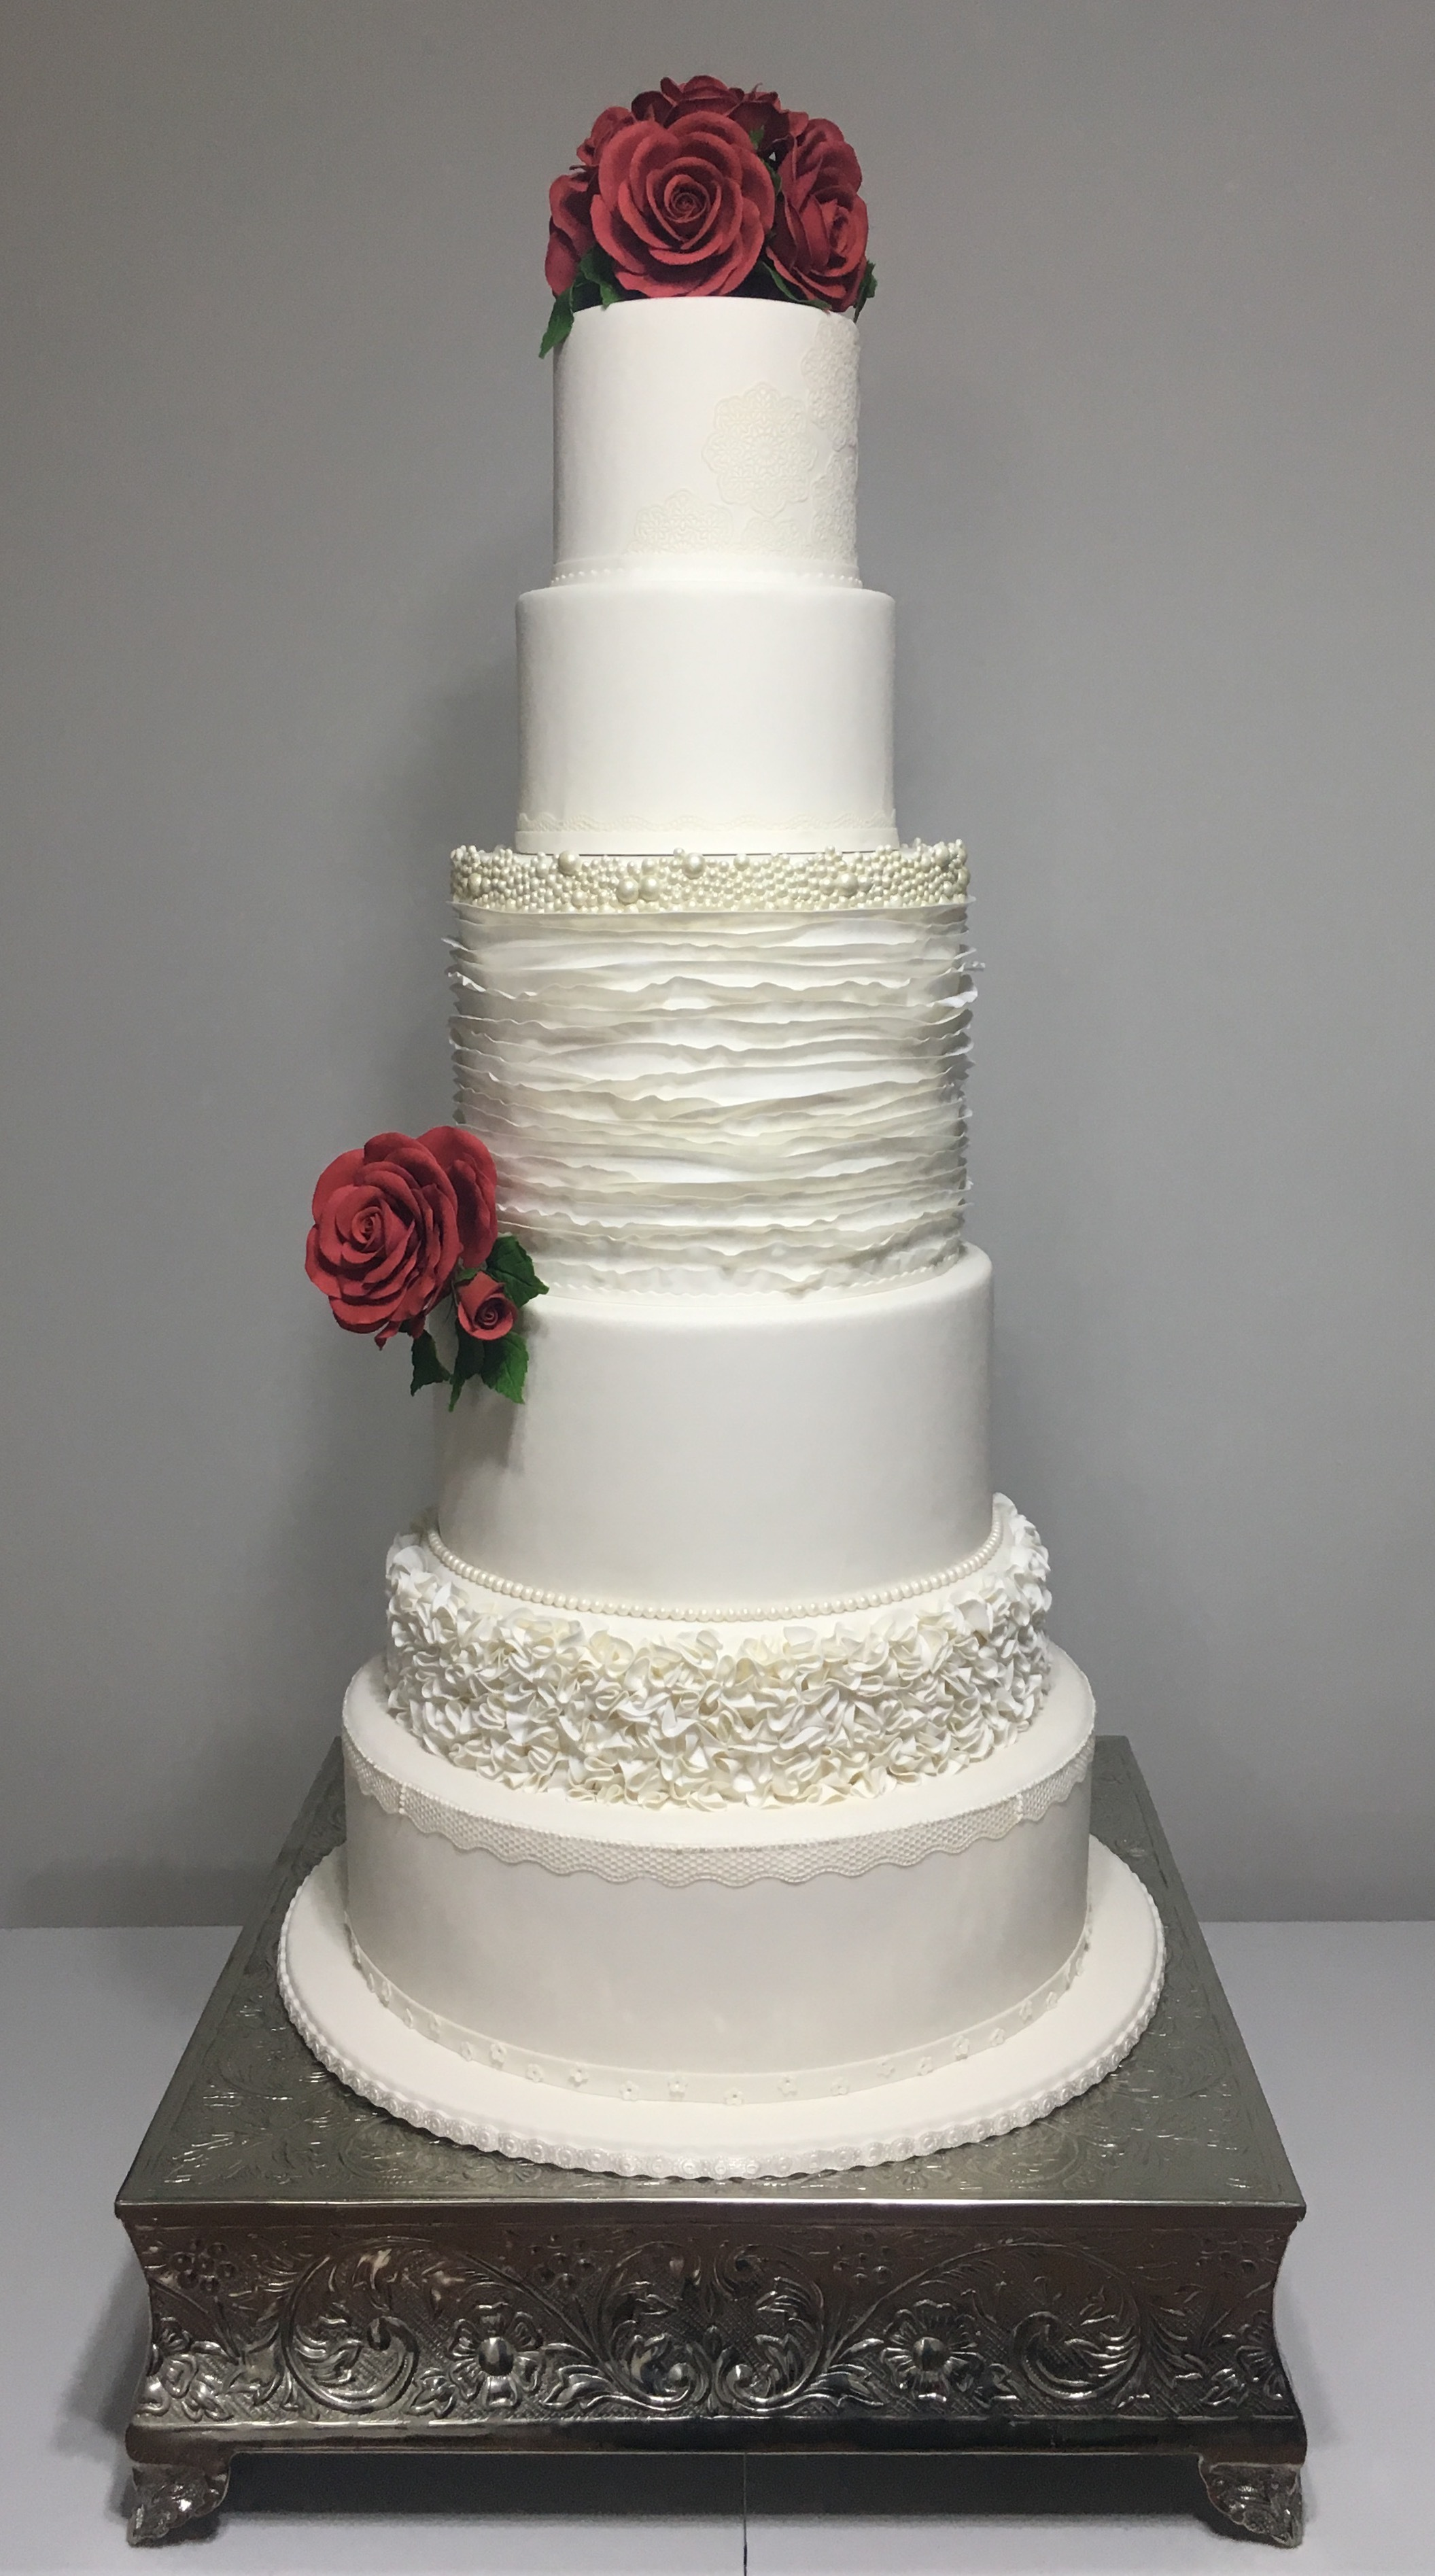 Tall white fondant wedding cake with red roses